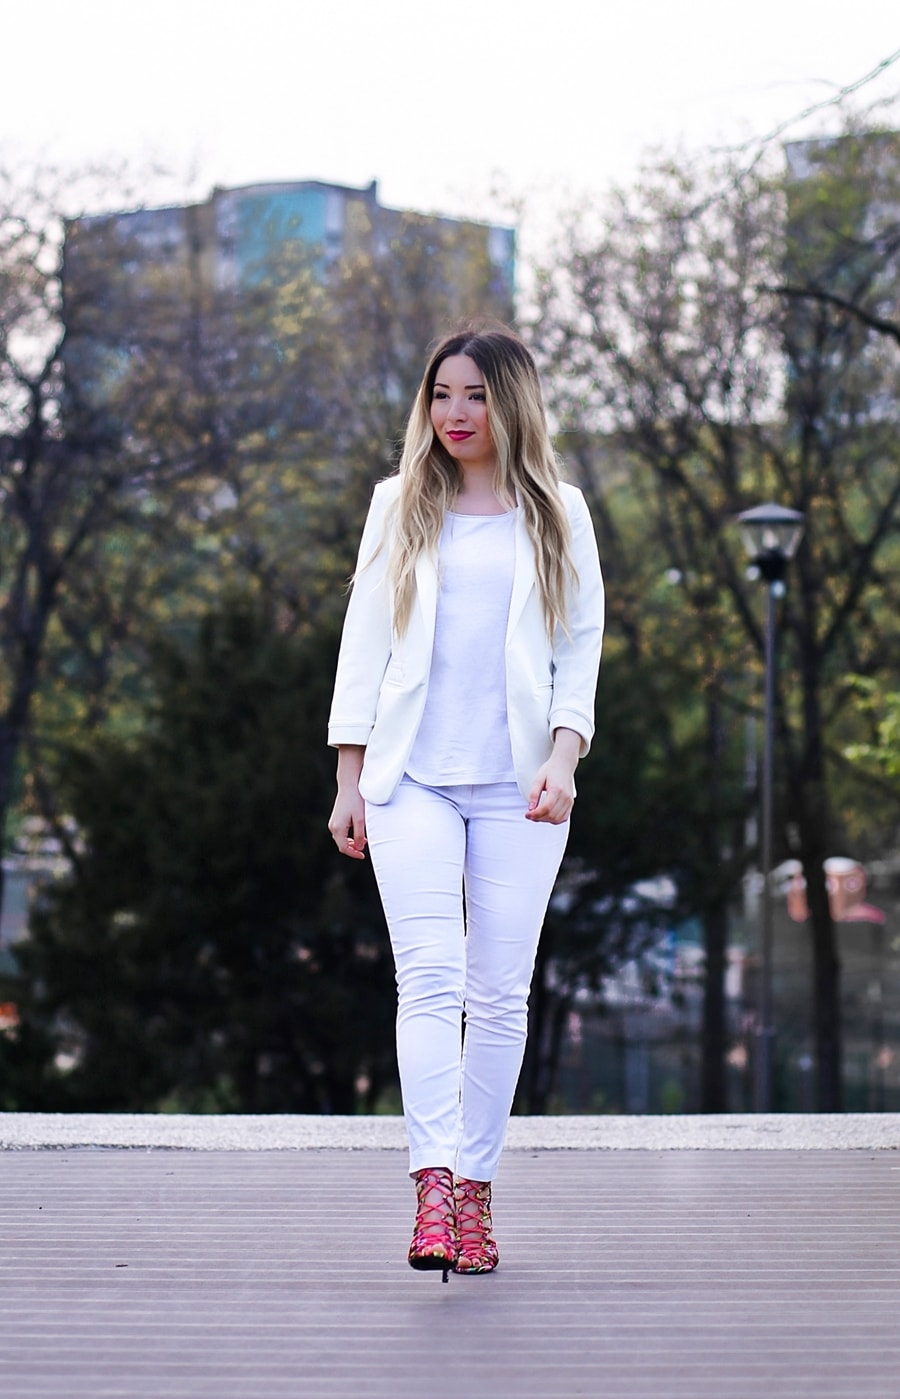 Street style - all white outfit, white skinny jeans, white basic t shirt, white blazer, multi color heeled sandals